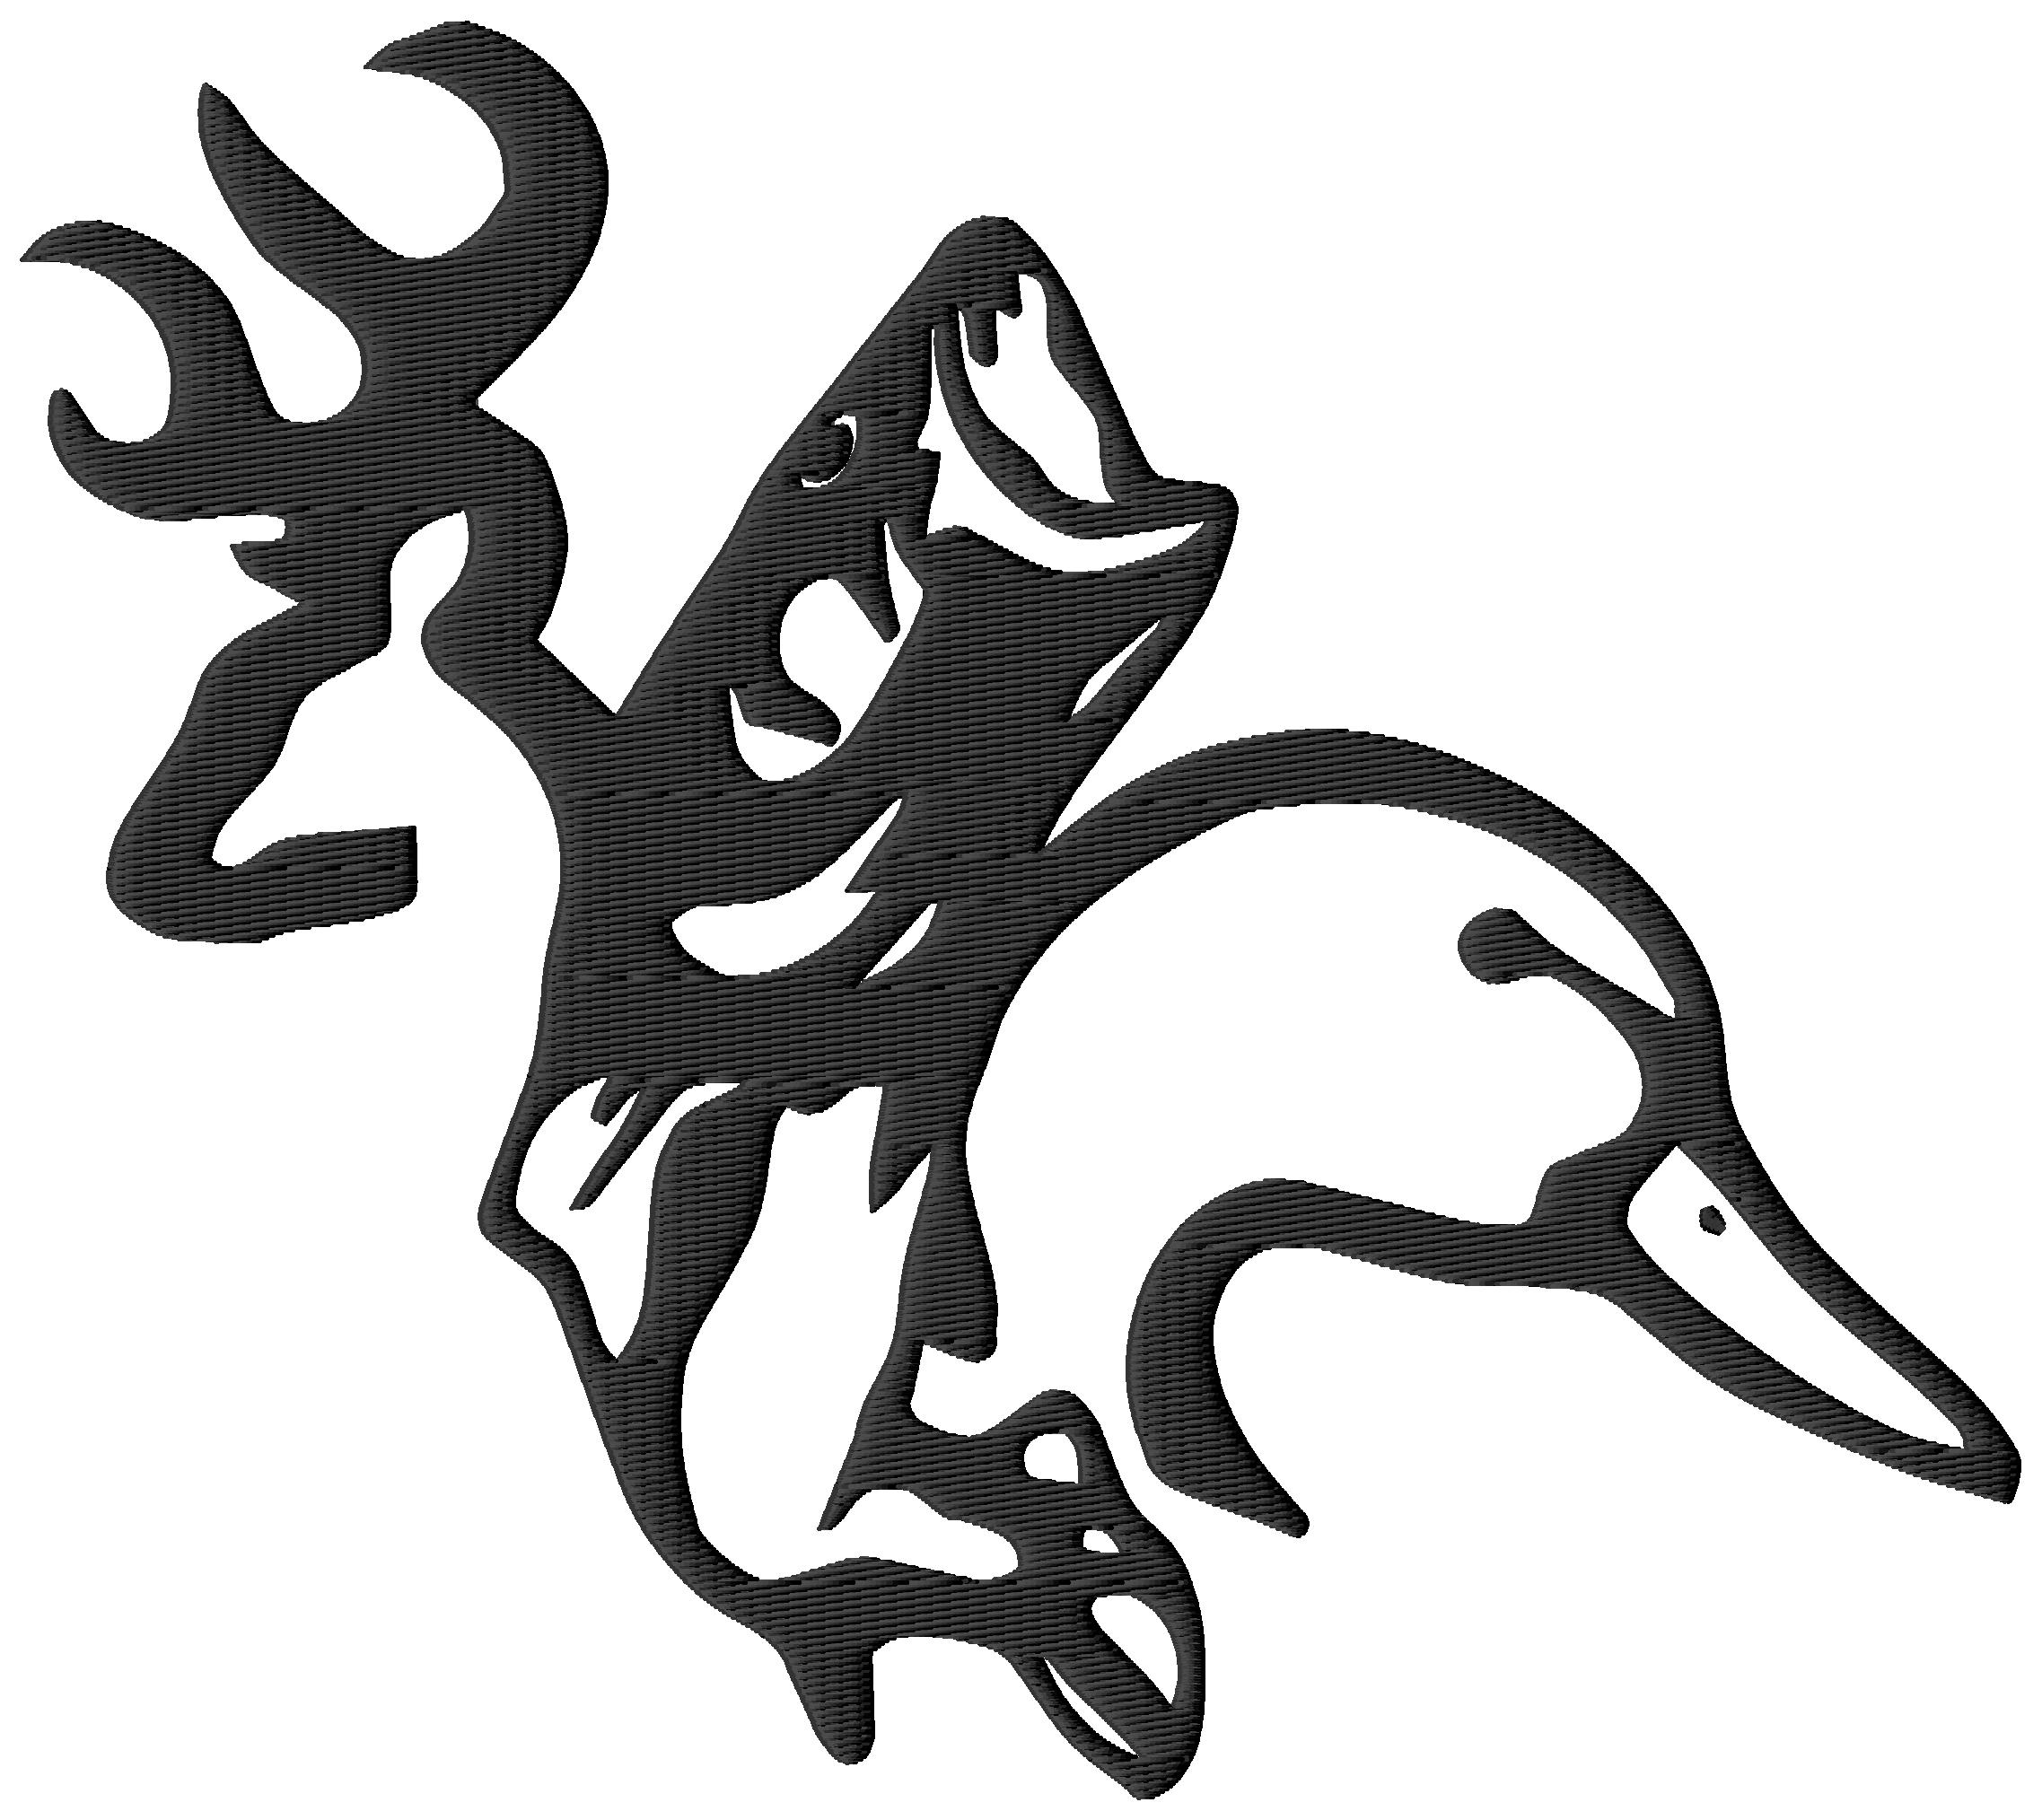 Browning symbol clipart banner royalty free Free Browning Symbol, Download Free Clip Art, Free Clip Art on ... banner royalty free